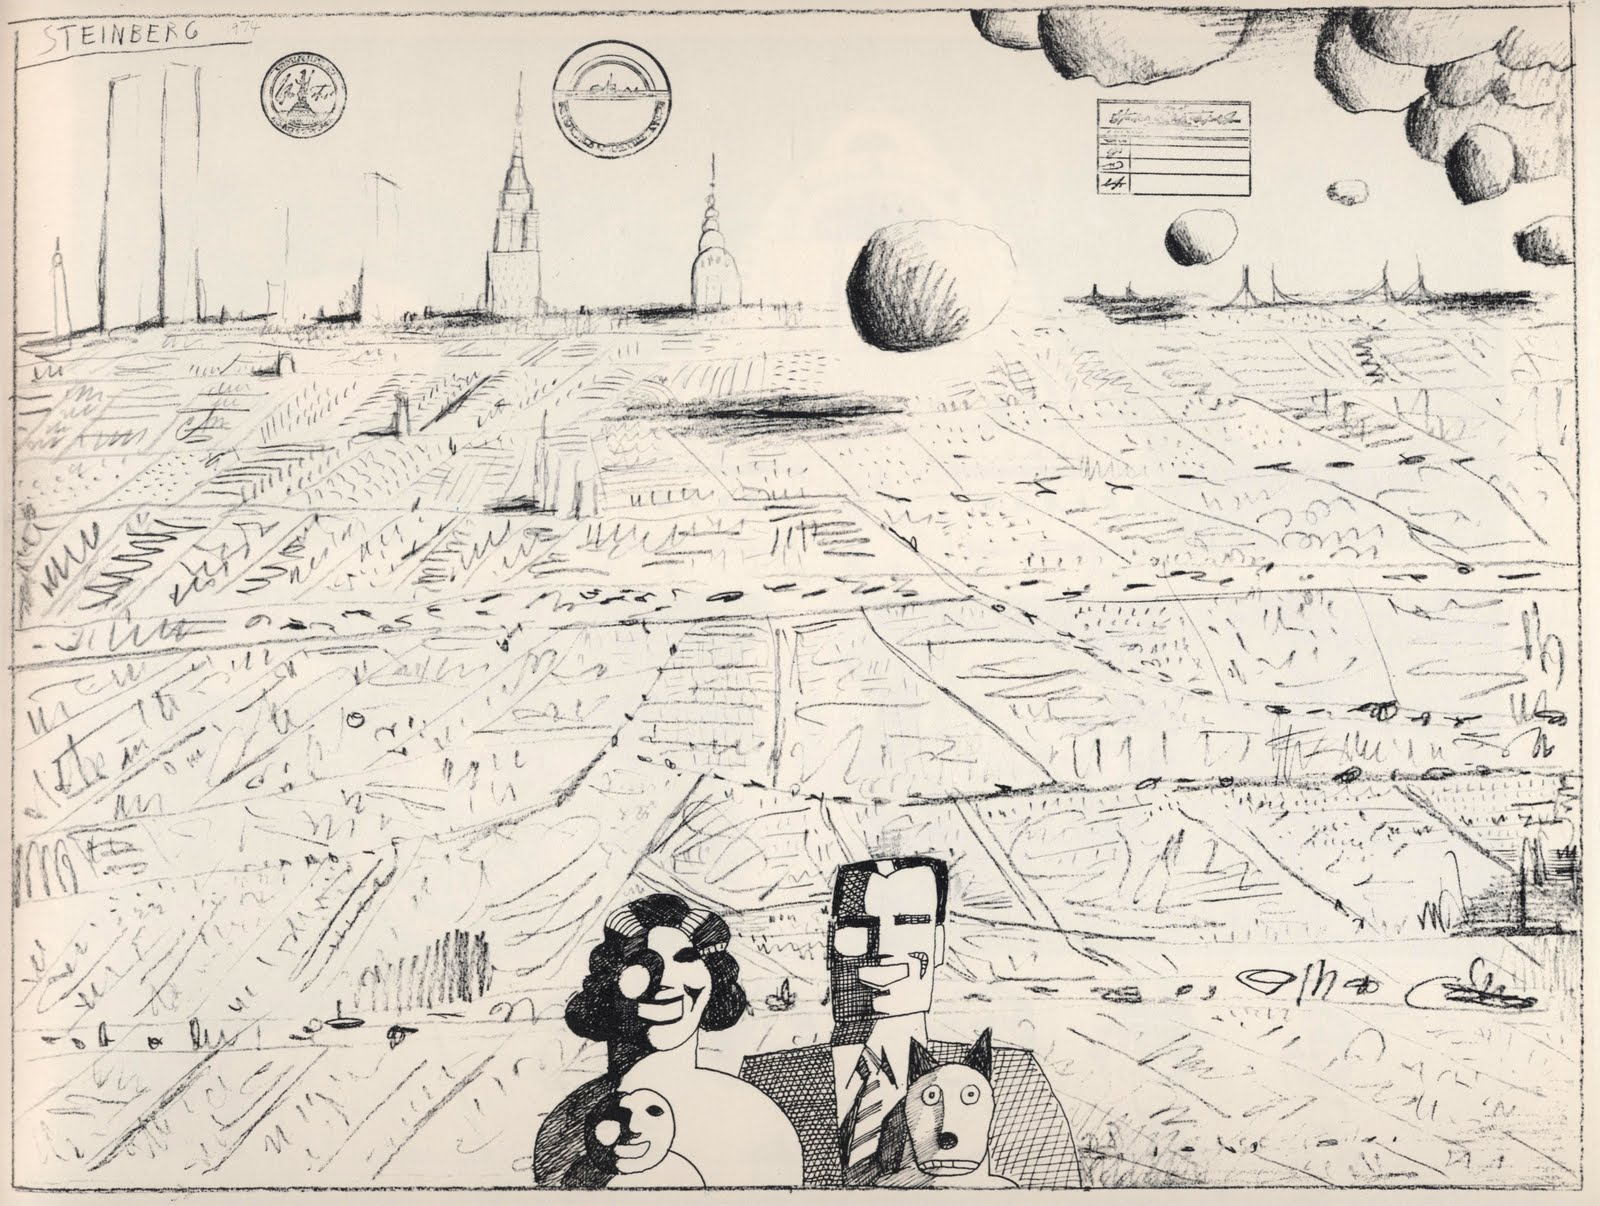 Saul Steinberg - Art - Review - The New York Times